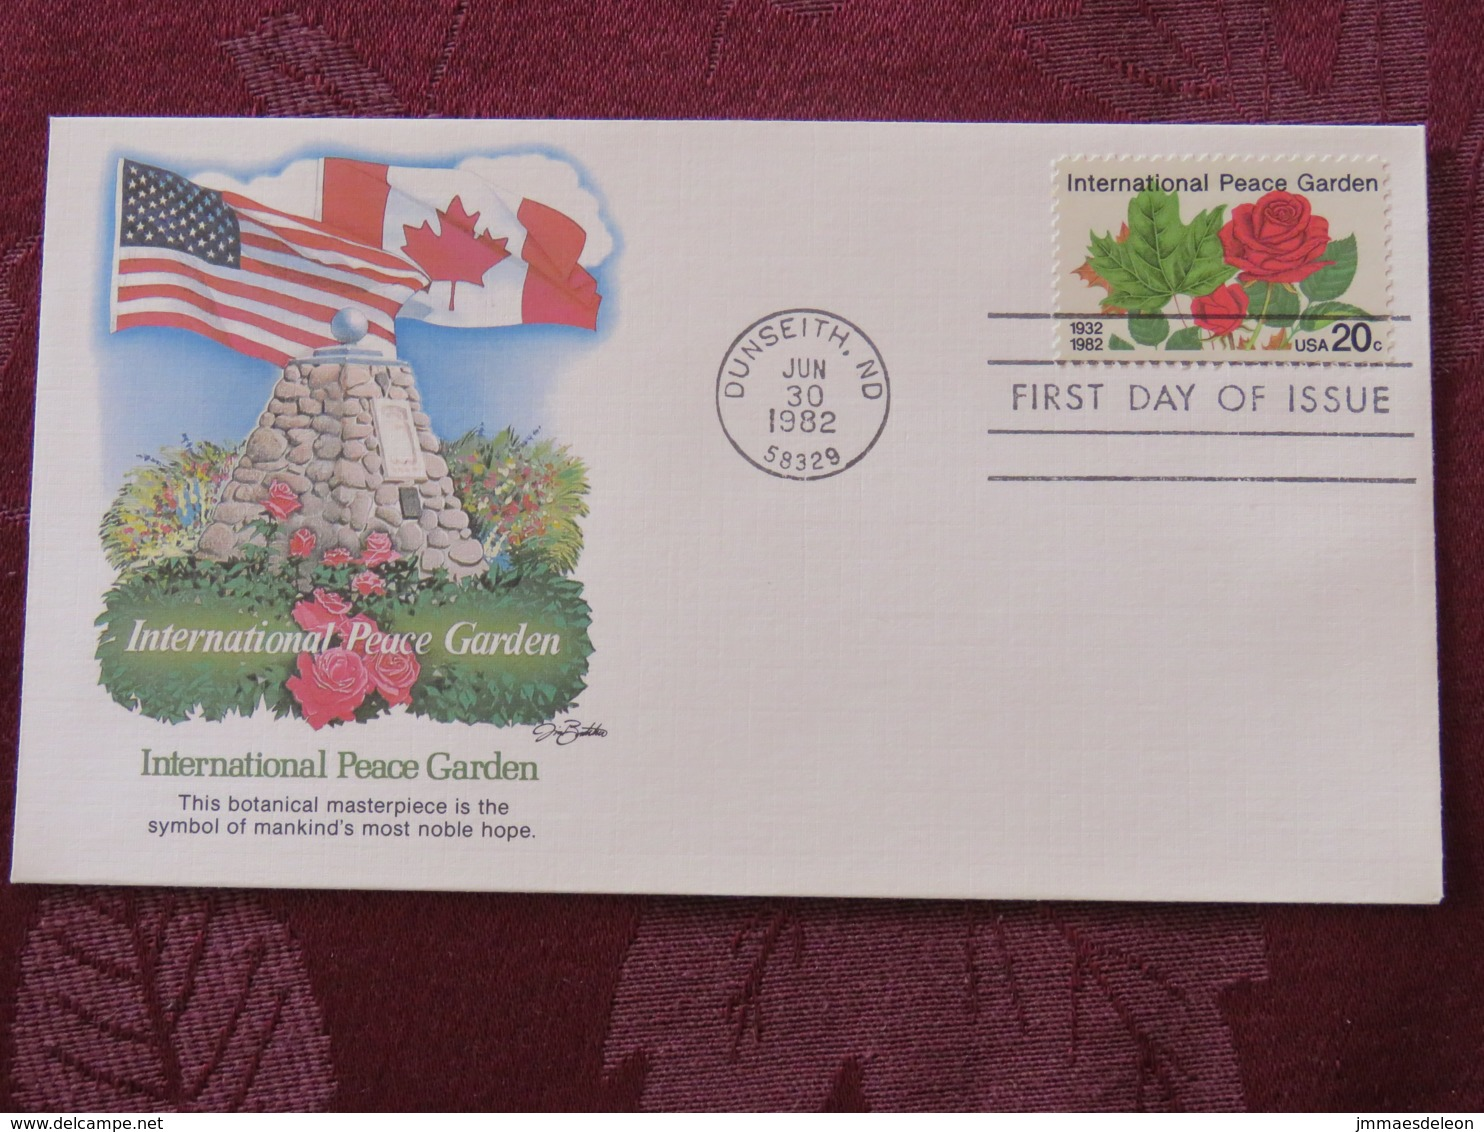 USA 1982 FDC Cover Dunseith - International Peace Garden - Canada - Roses - Lettres & Documents